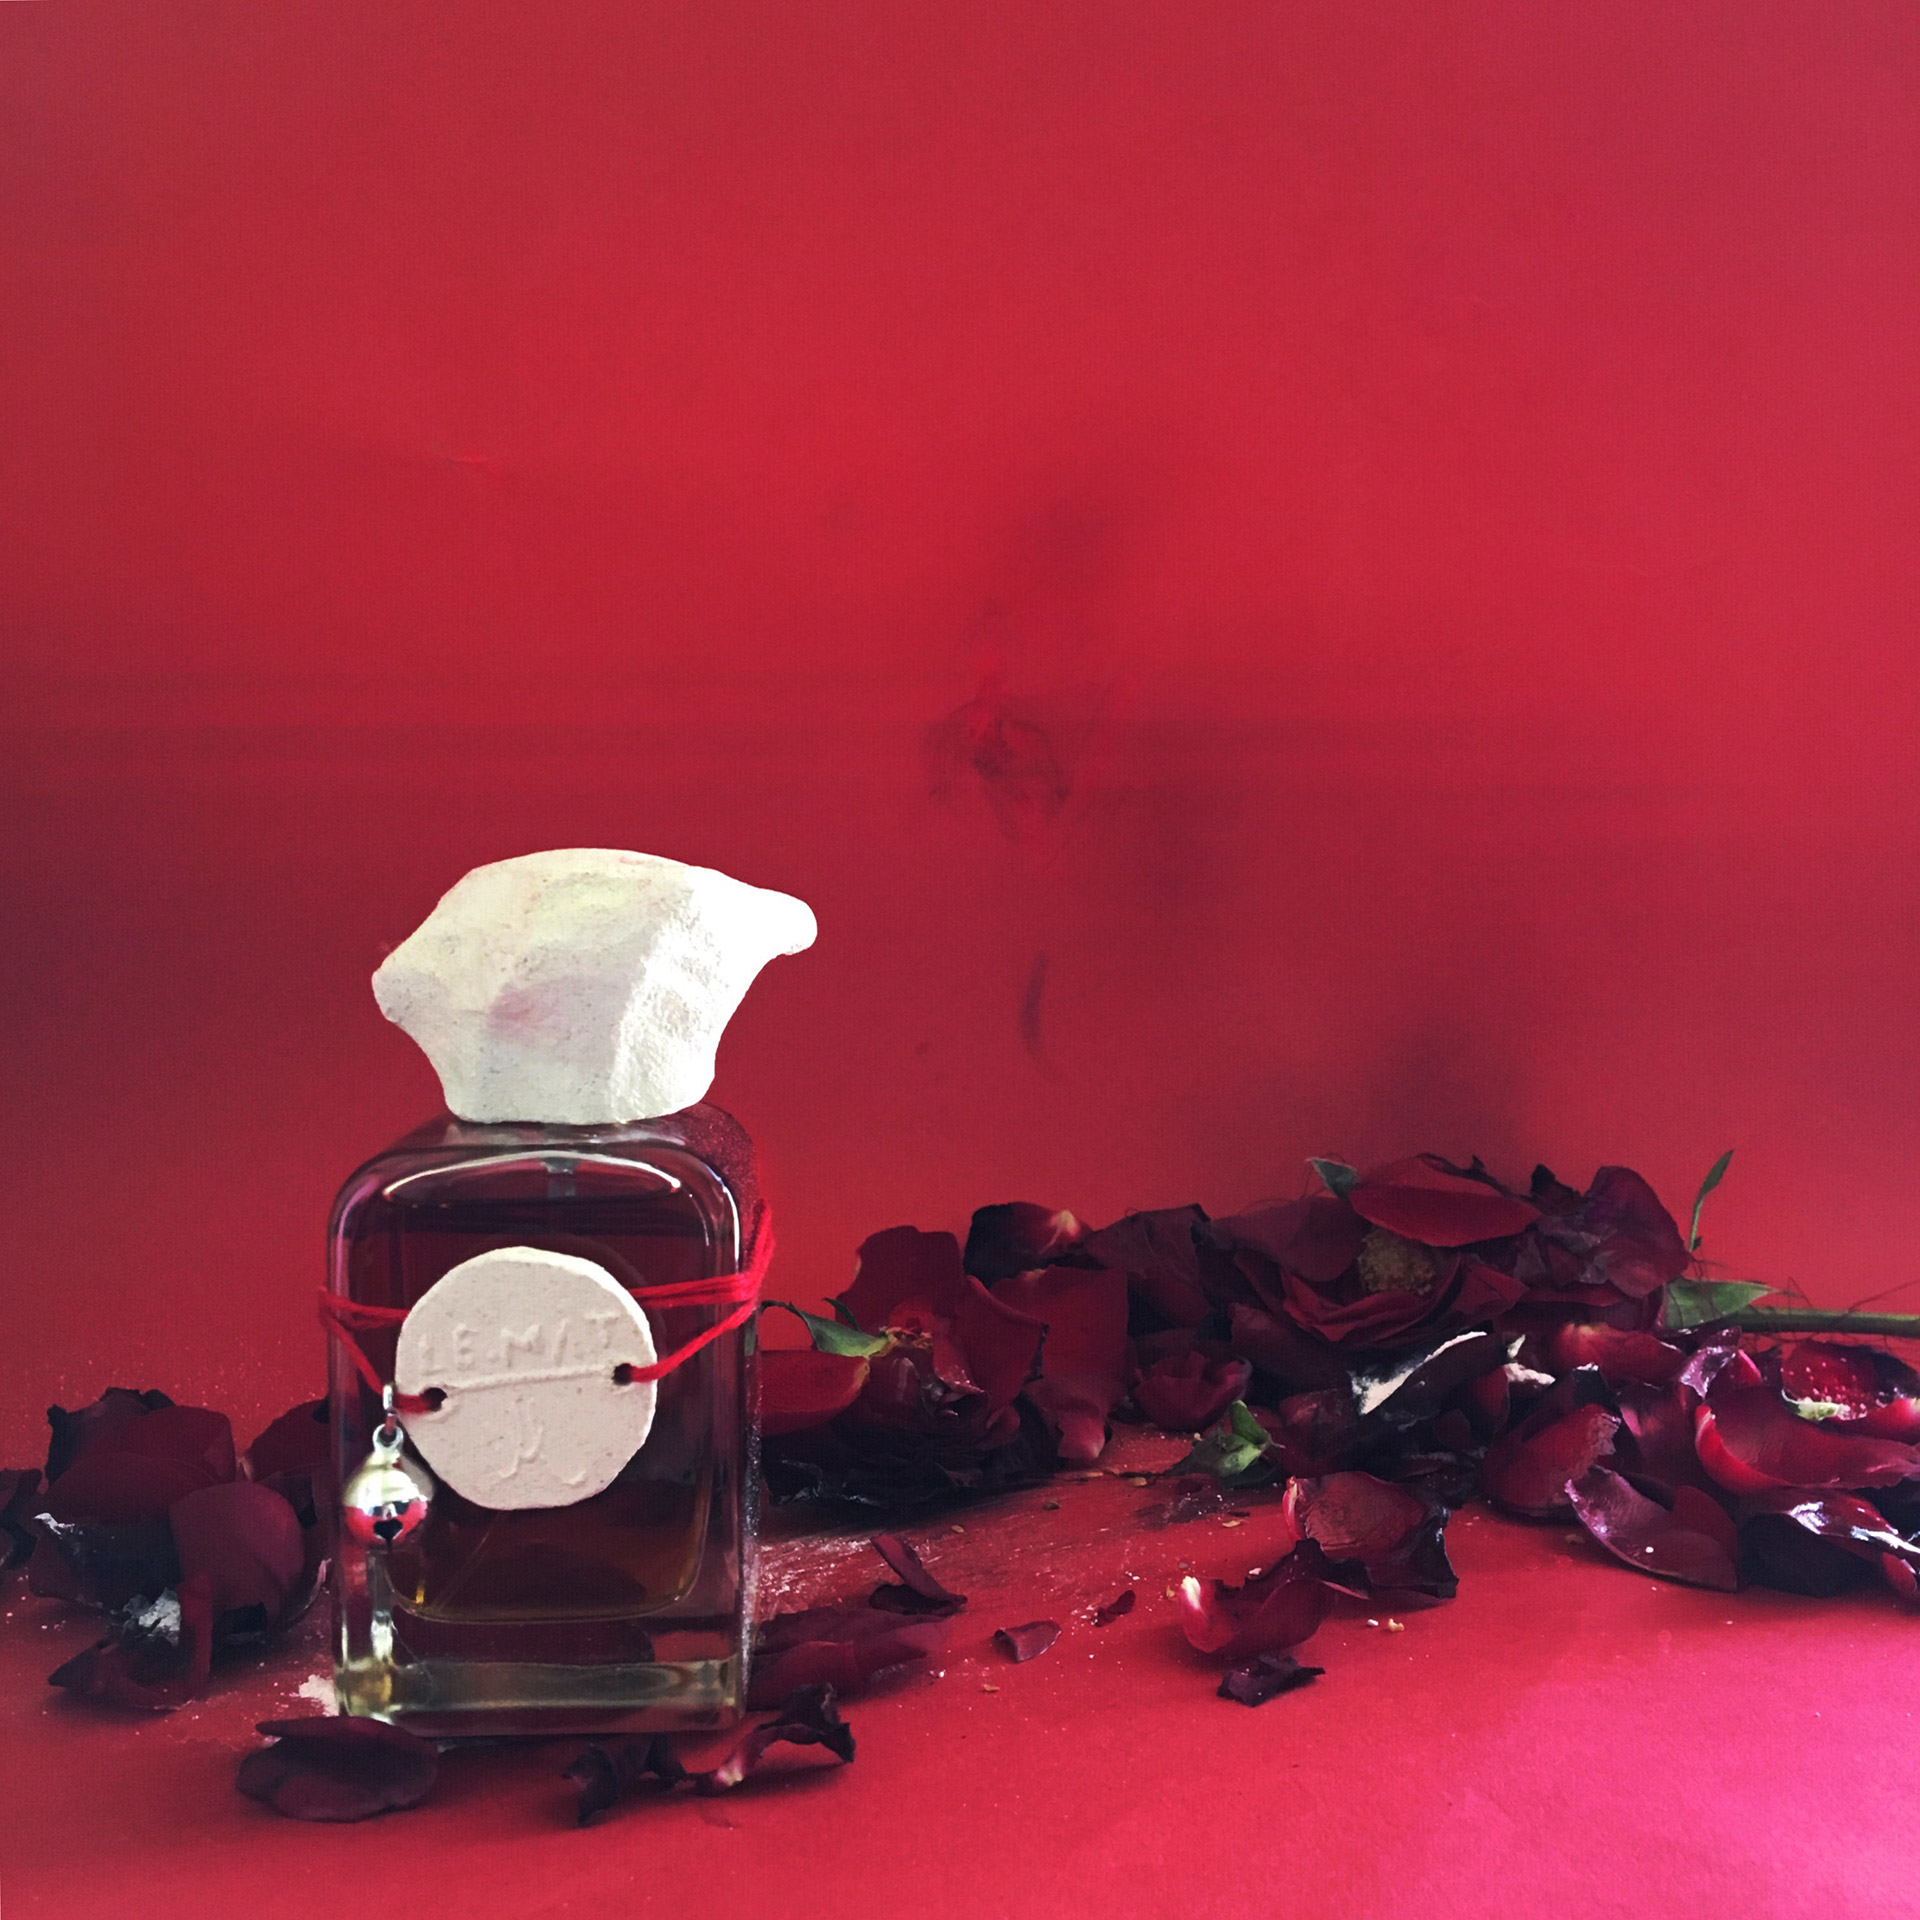 Le Mat on red background and rotten roses